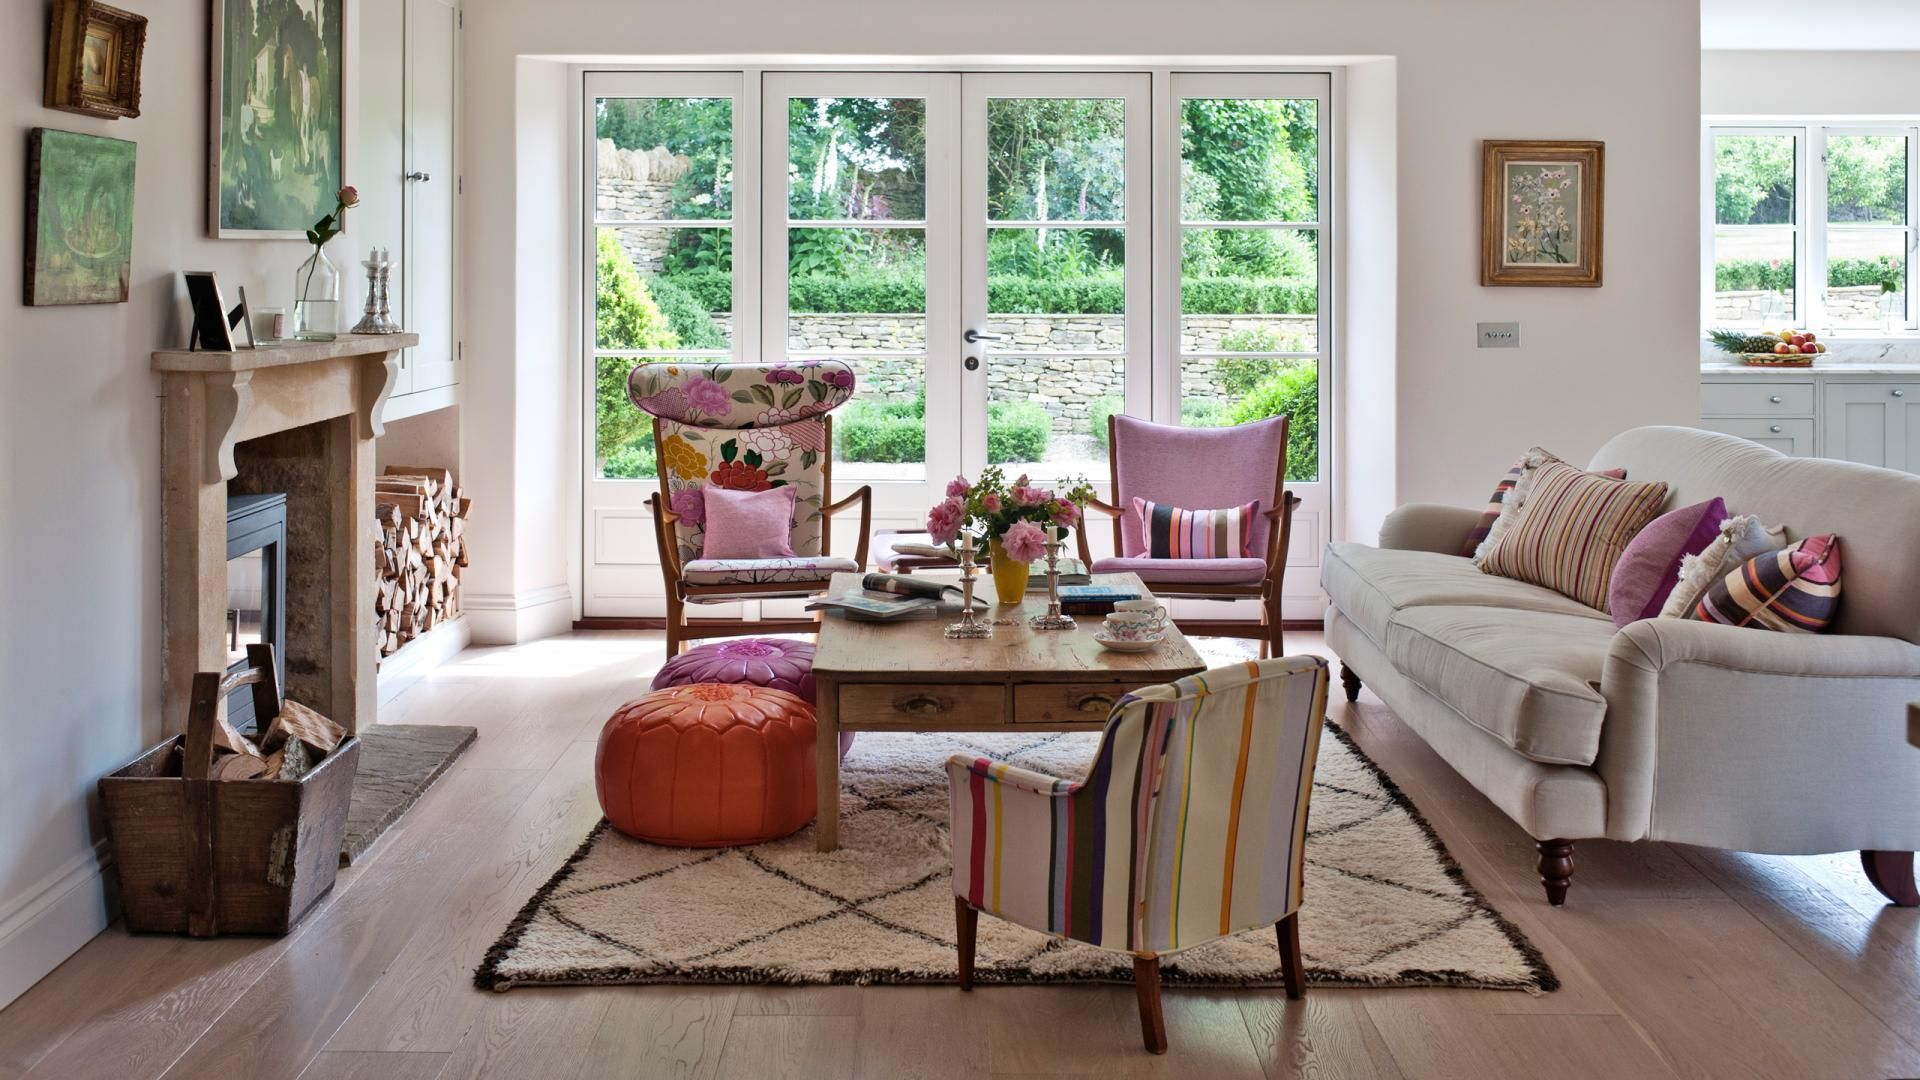 Traditional Living Room with Mismatched Chairs - The Room Edit